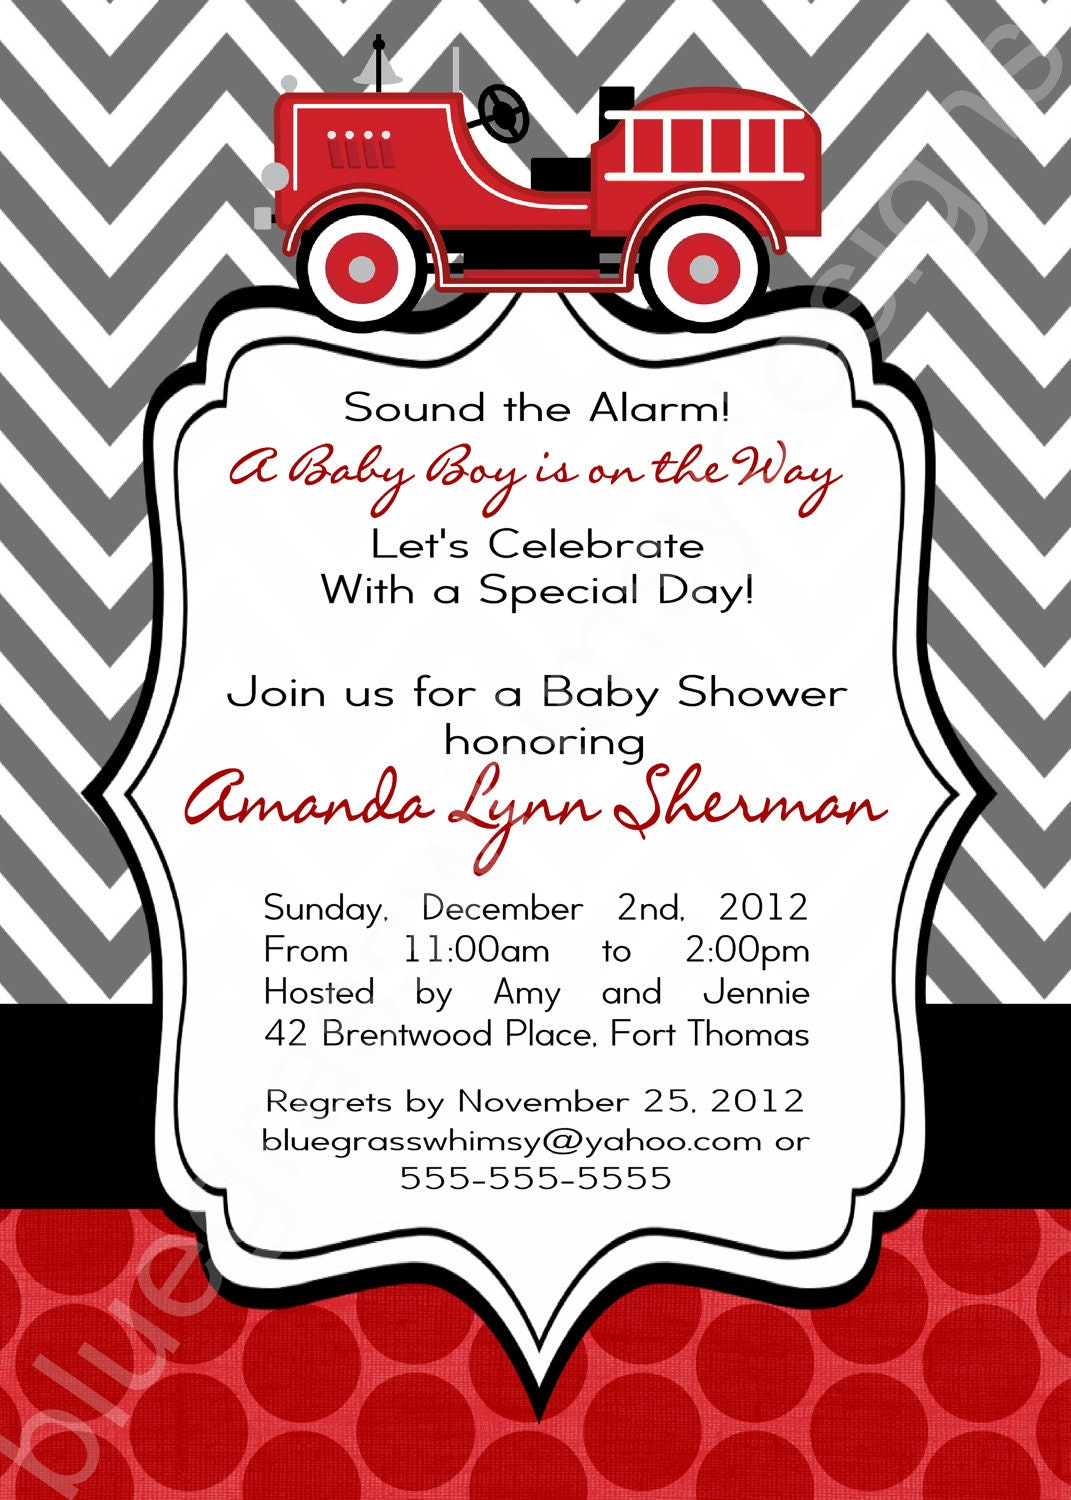 Firetruck Baby Shower Invitation for a Baby Boy red black